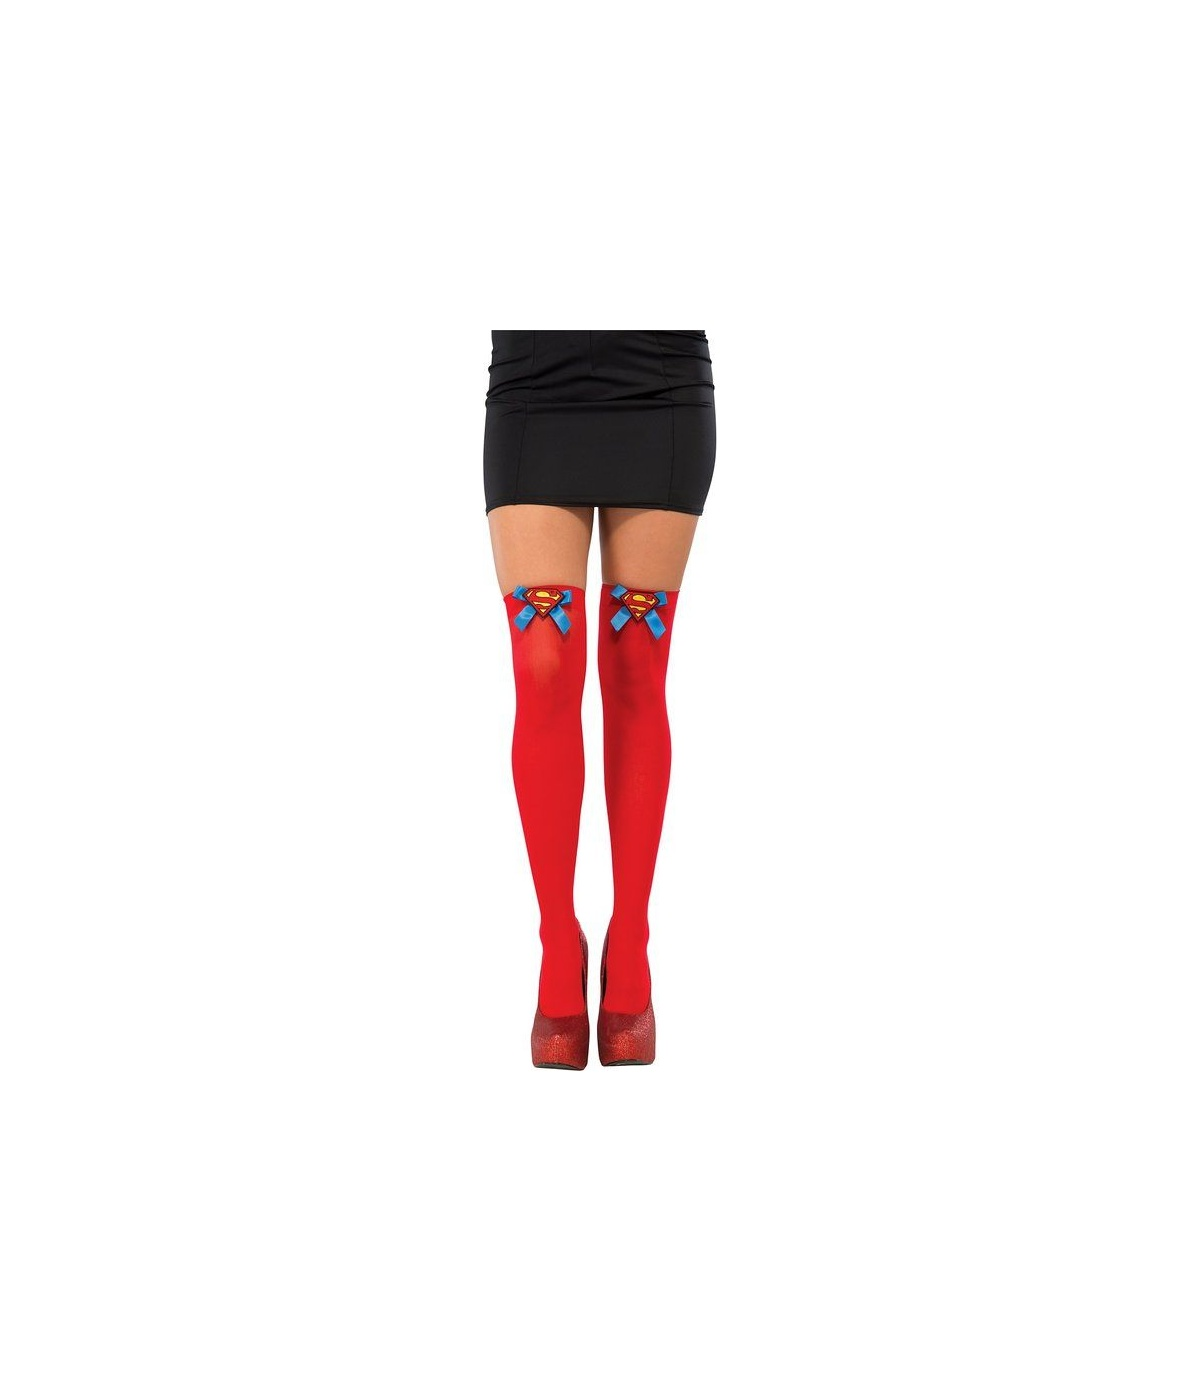 0e368c6fe Supergirl Thigh High Womens Stockings - Costume Accessories